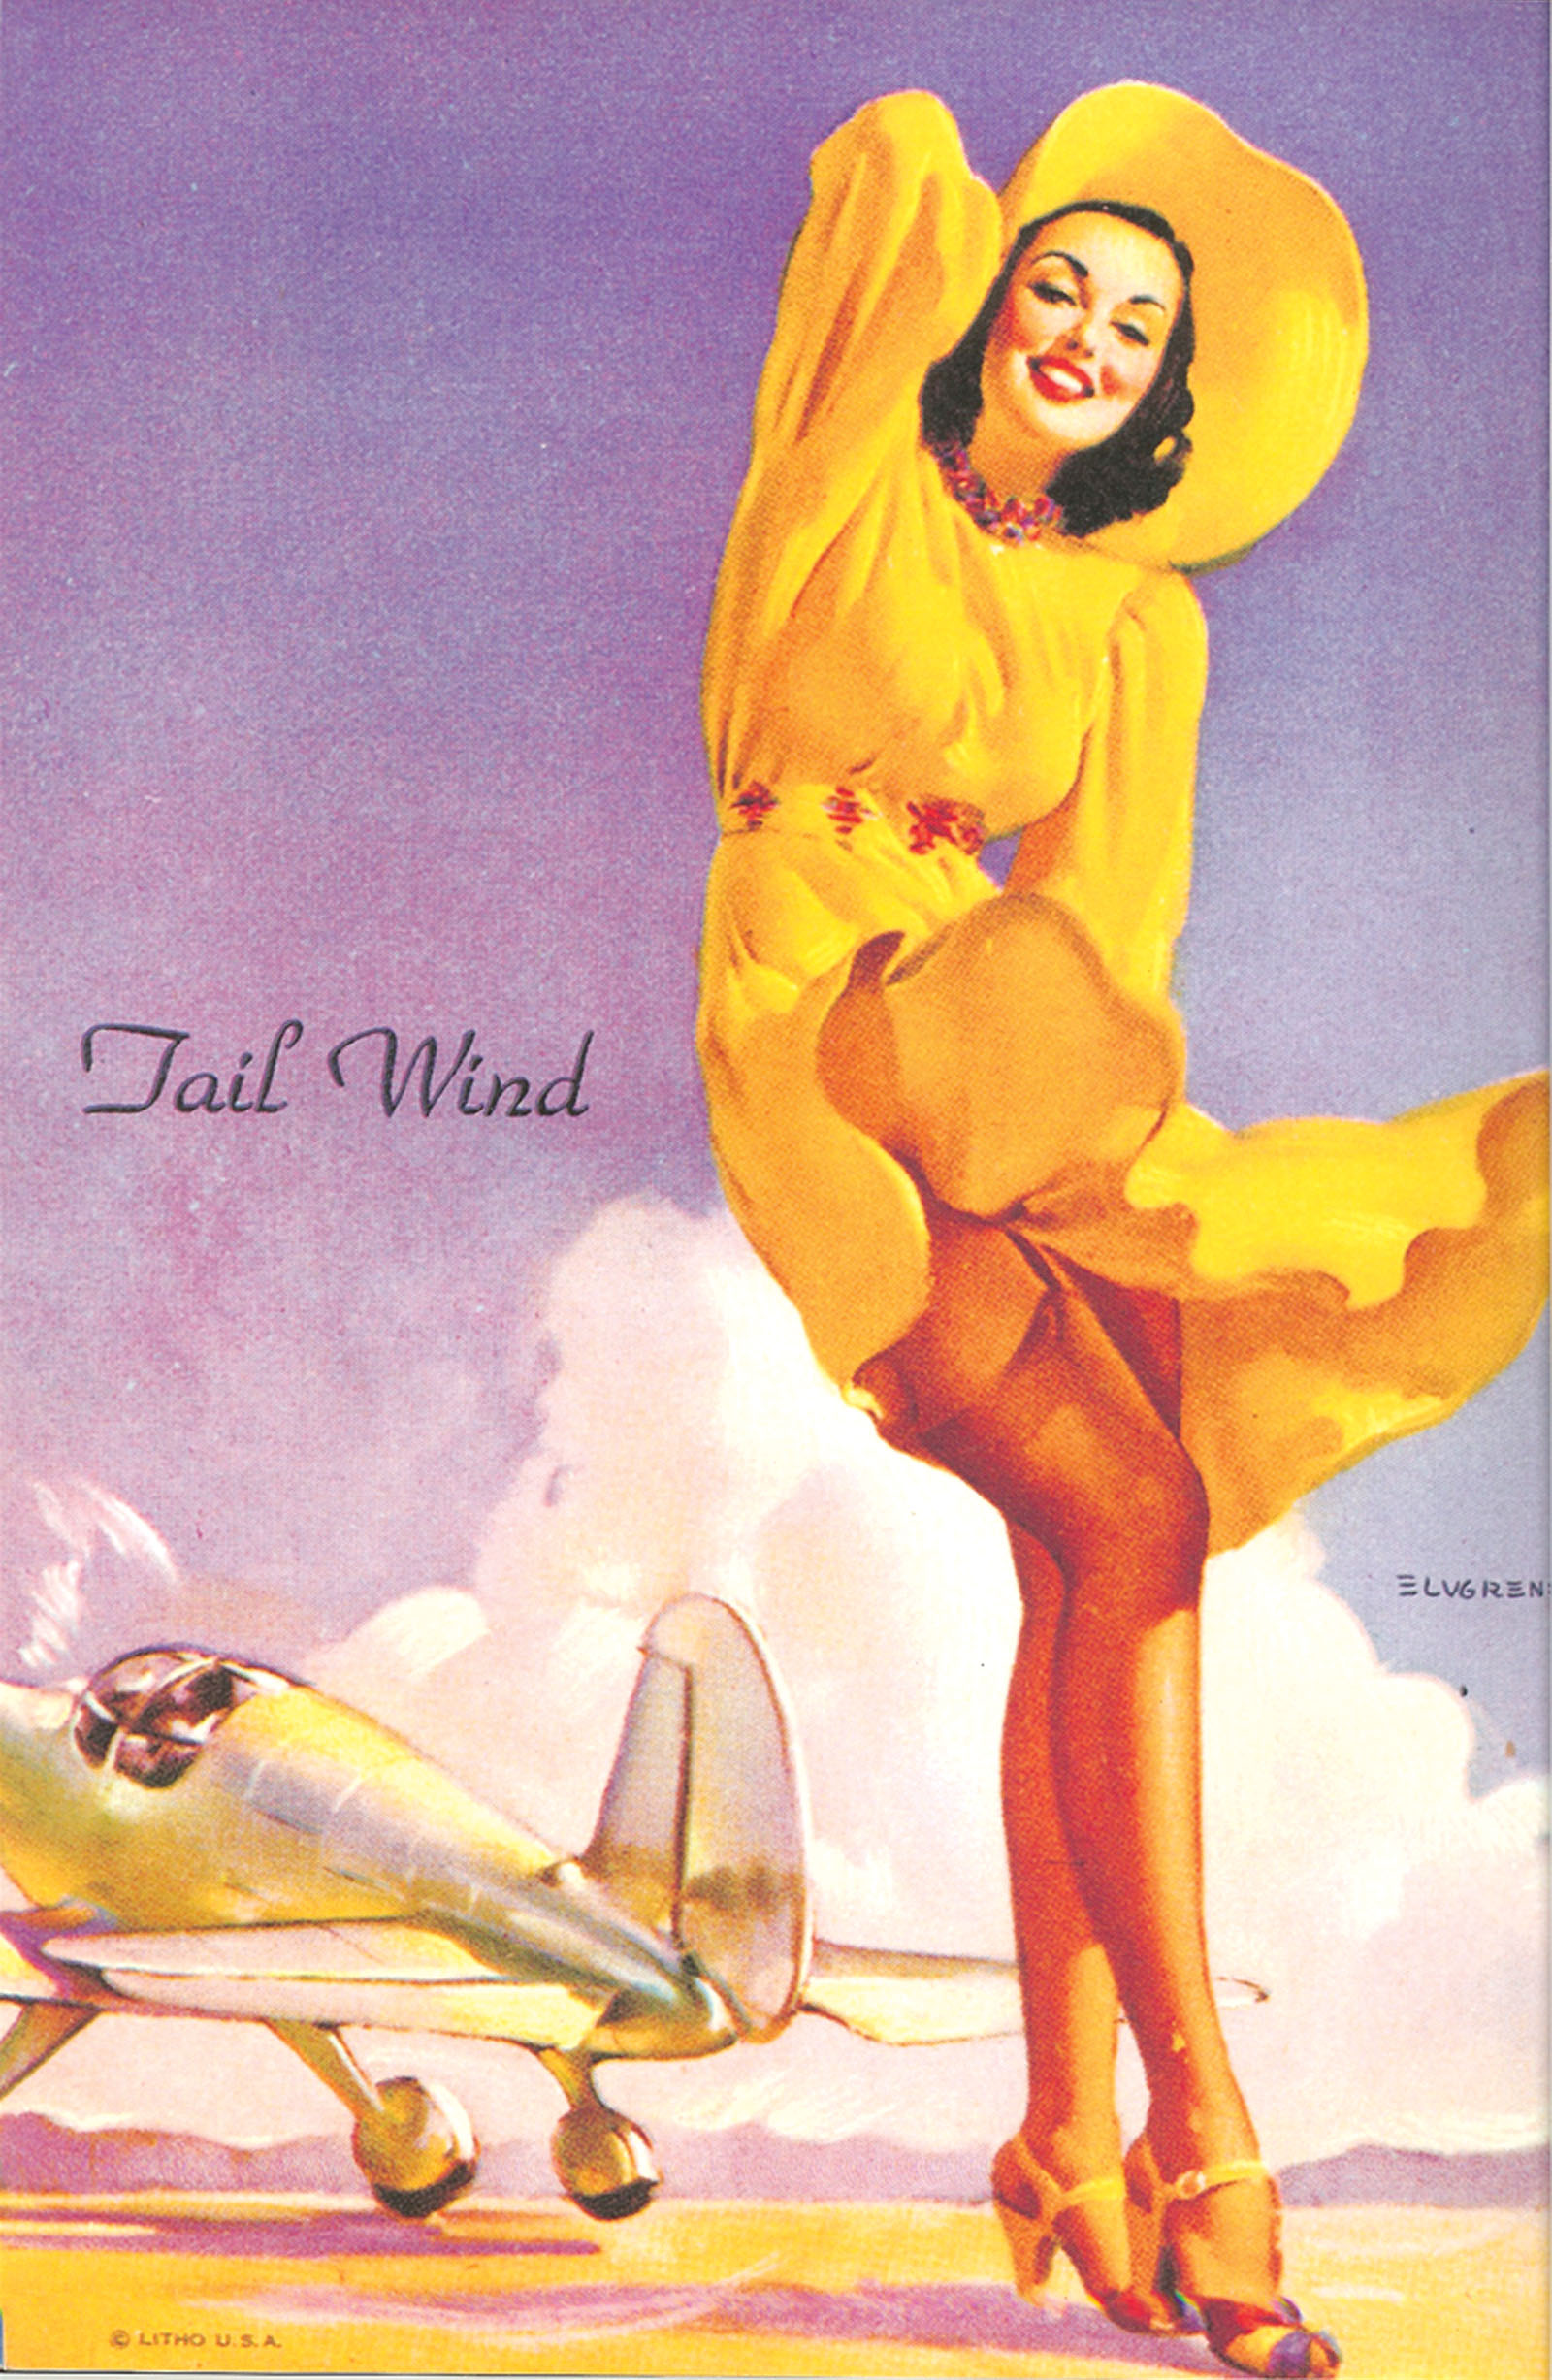 For the Boys: The Racy Pin-Ups of World War II